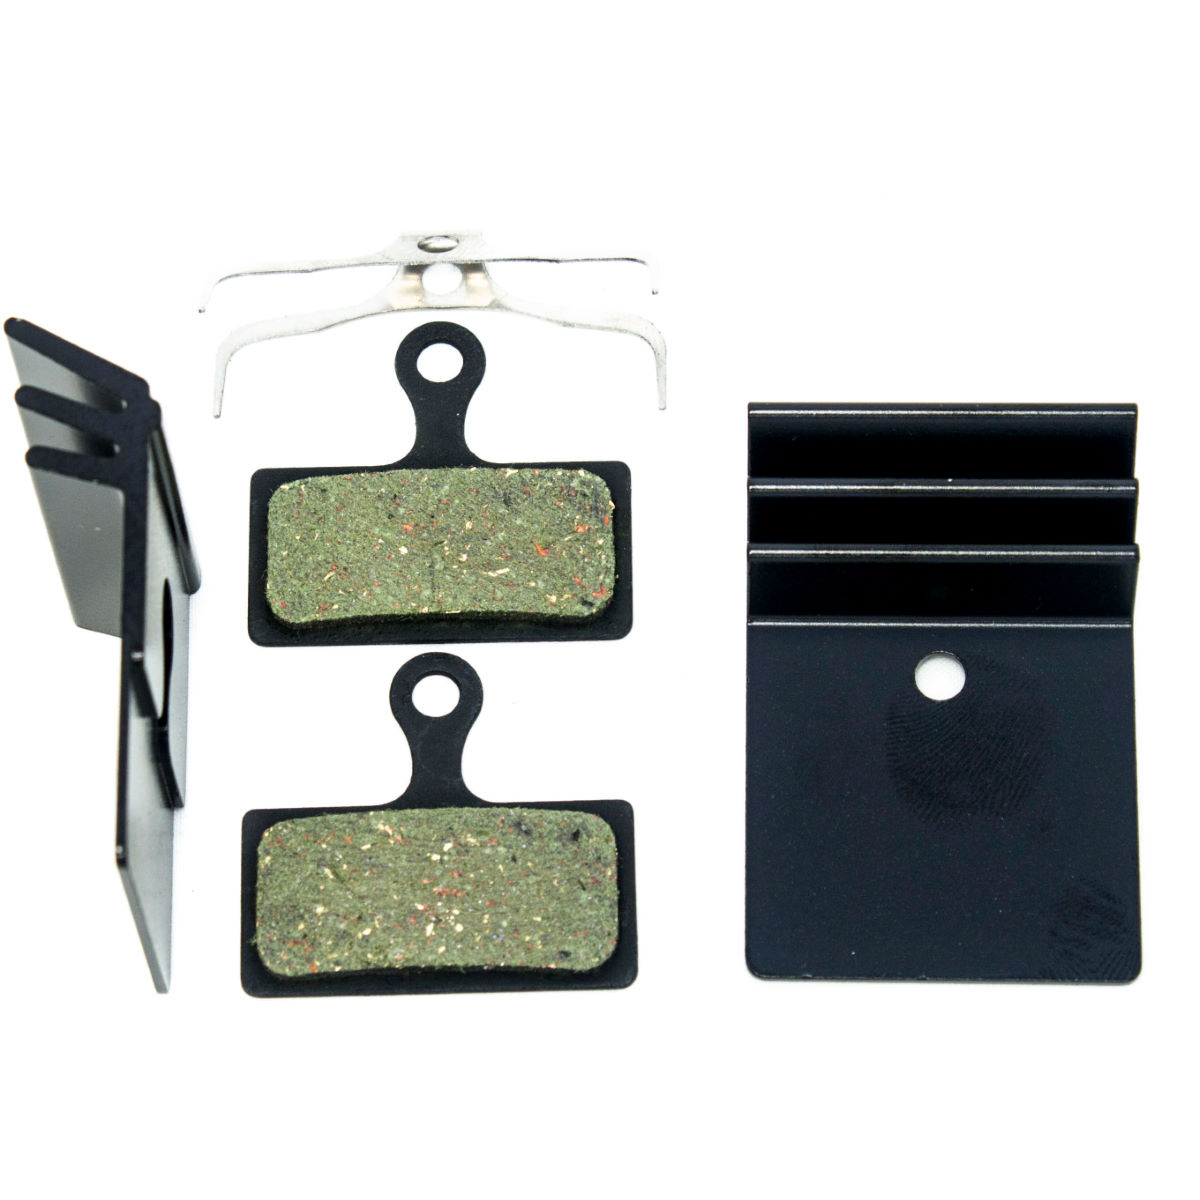 Clarks Clarks Finned Disc Pads - Shimano XTR   Disc Brake Pads